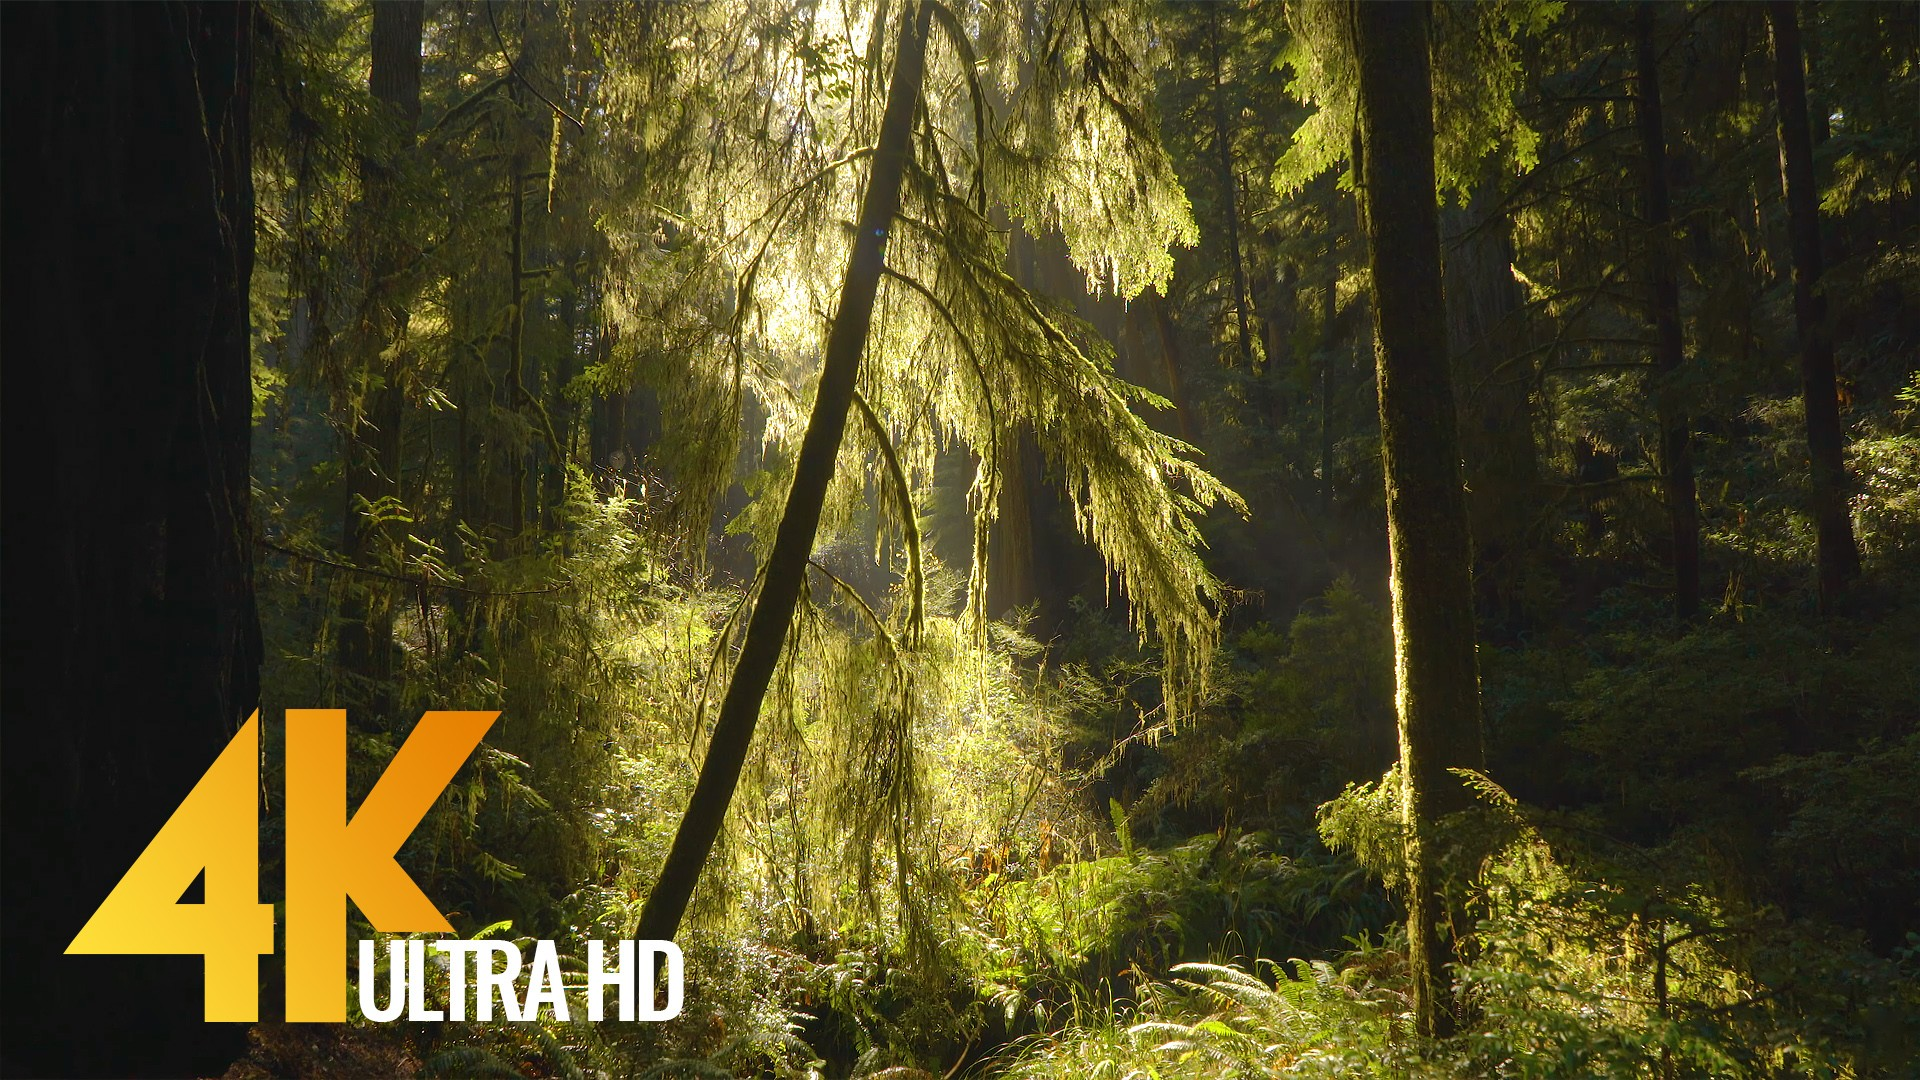 8 Hours of Relaxing Sounds of Water Stream in the Morning Forest for Sleep & Study in 4K Resoluciaon